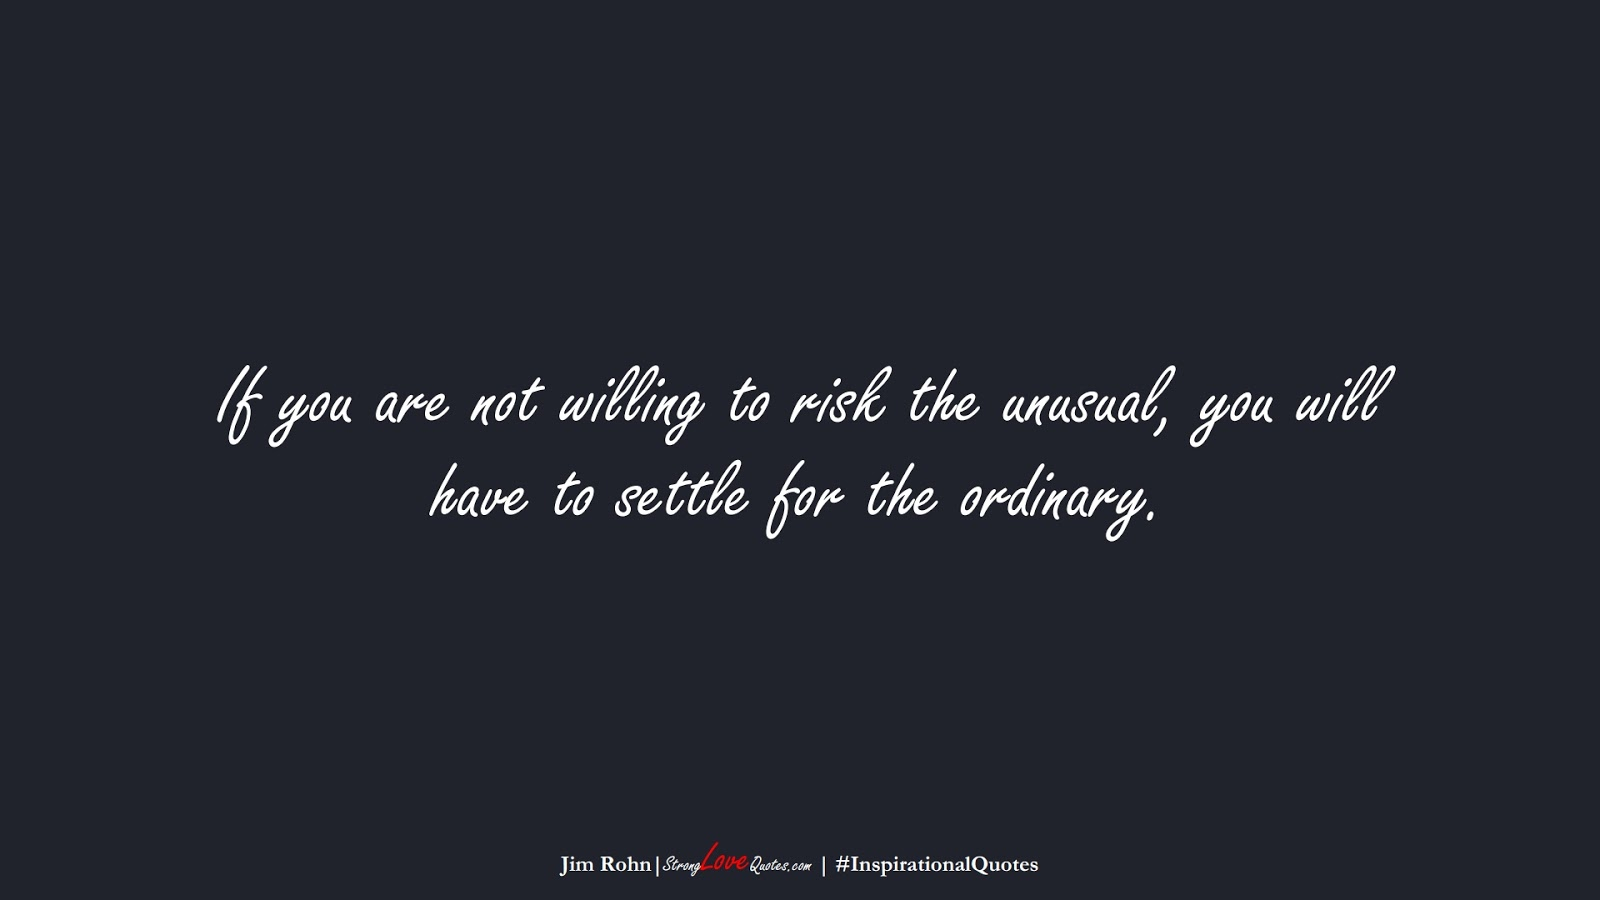 If you are not willing to risk the unusual, you will have to settle for the ordinary. (Jim Rohn);  #InspirationalQuotes